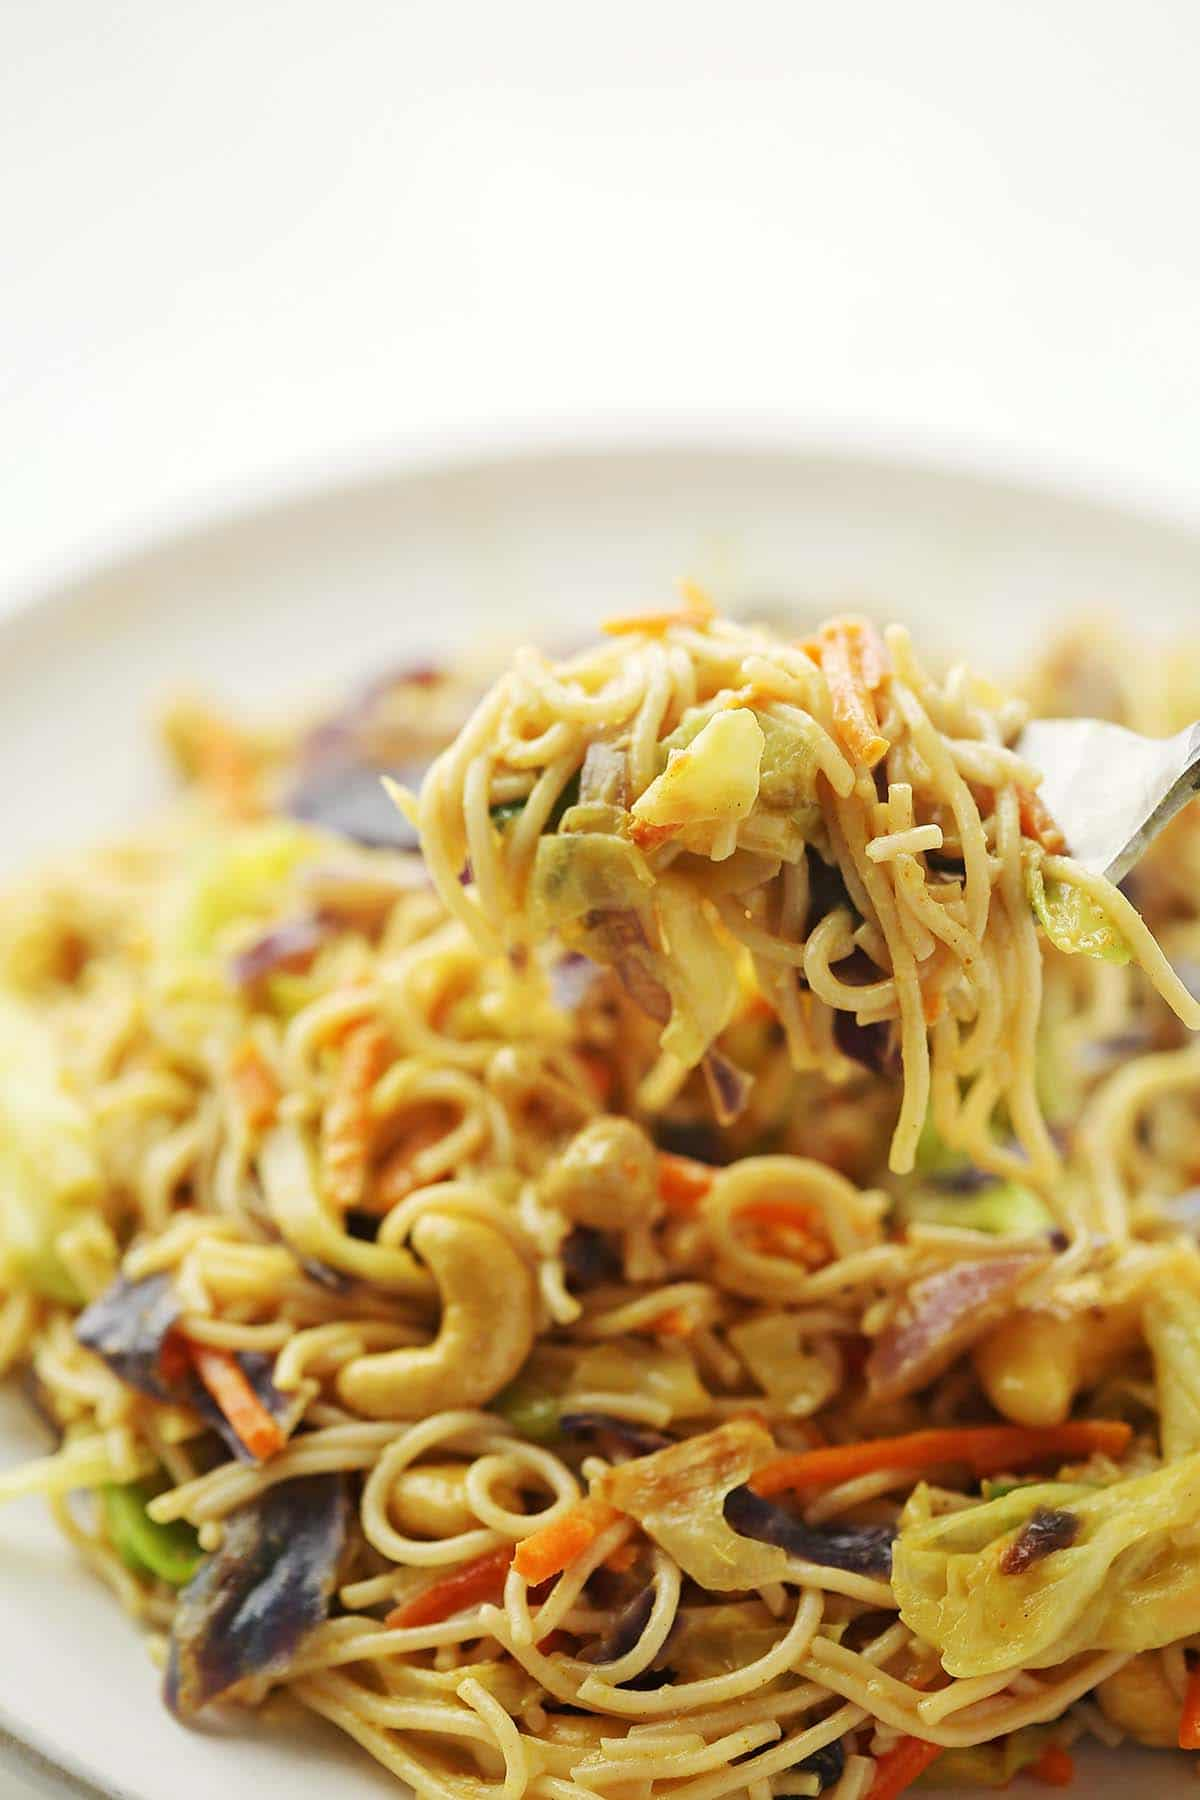 close up shot of plate with cabbage, noodles and cashew nuts